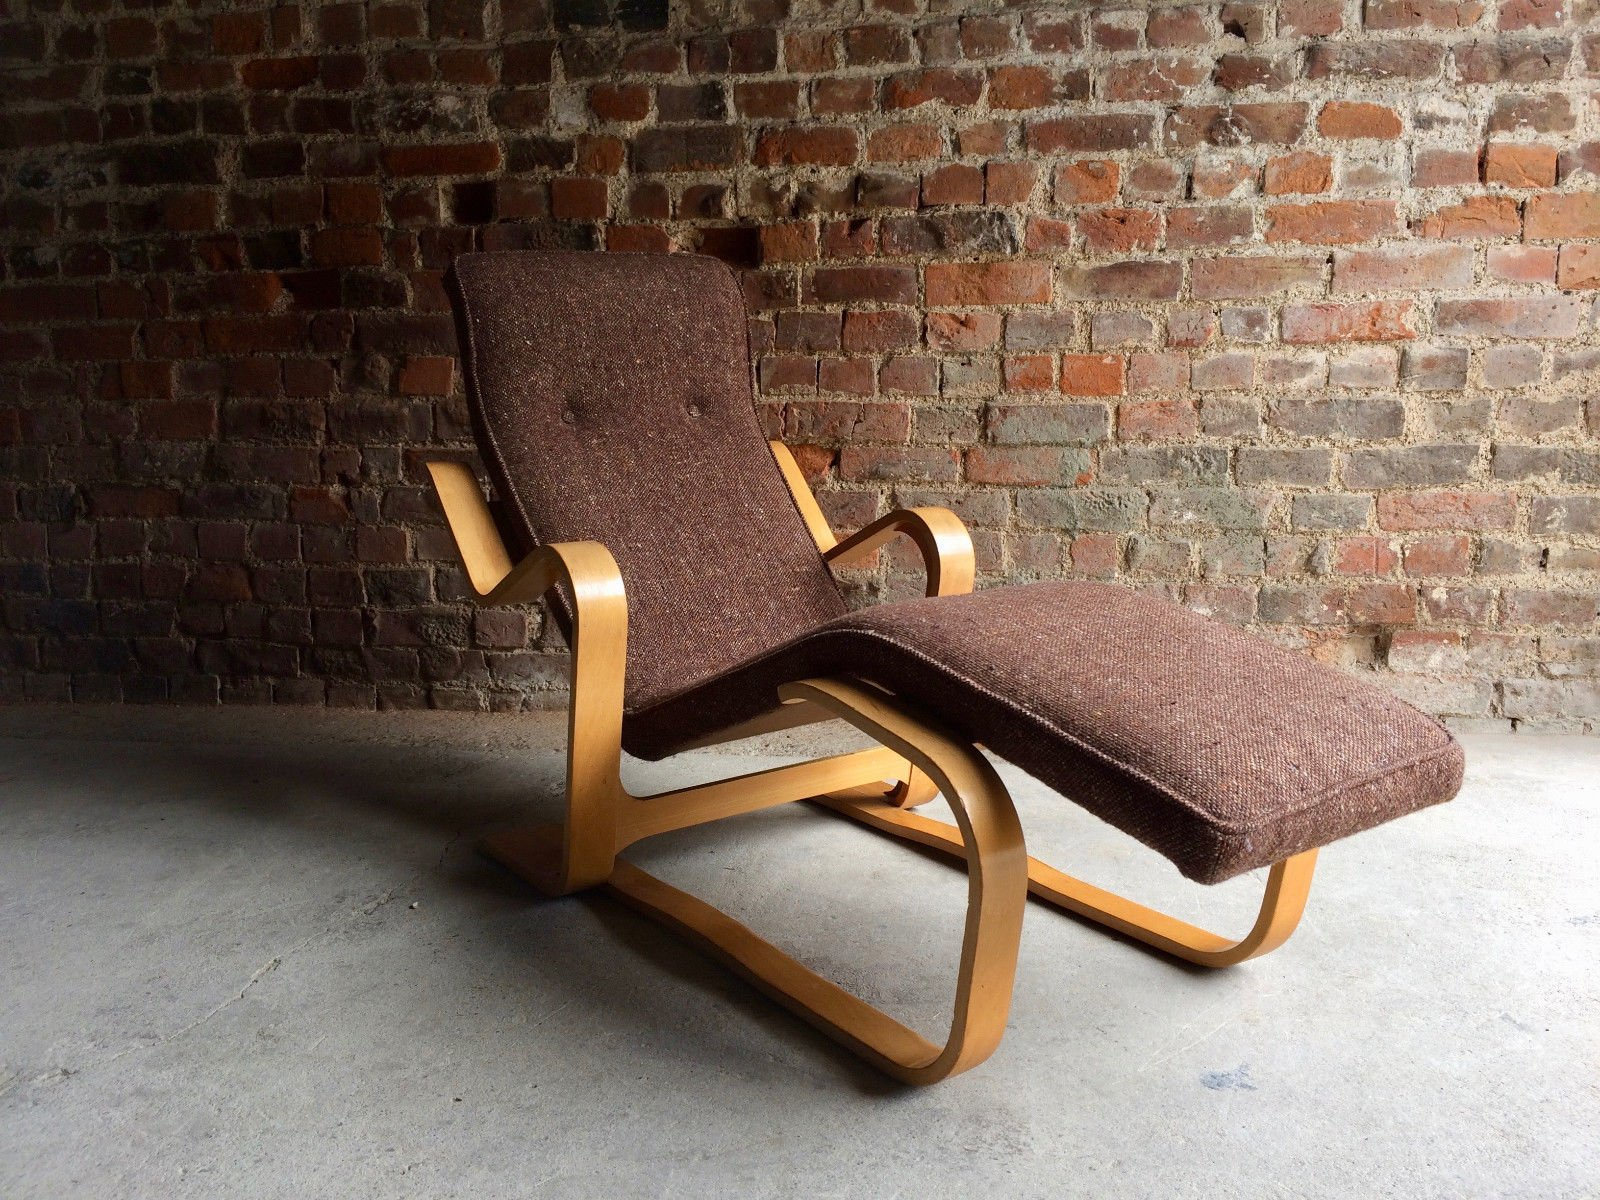 bauhaus chaise lounge by marcel breuer for knoll 1970s. Black Bedroom Furniture Sets. Home Design Ideas